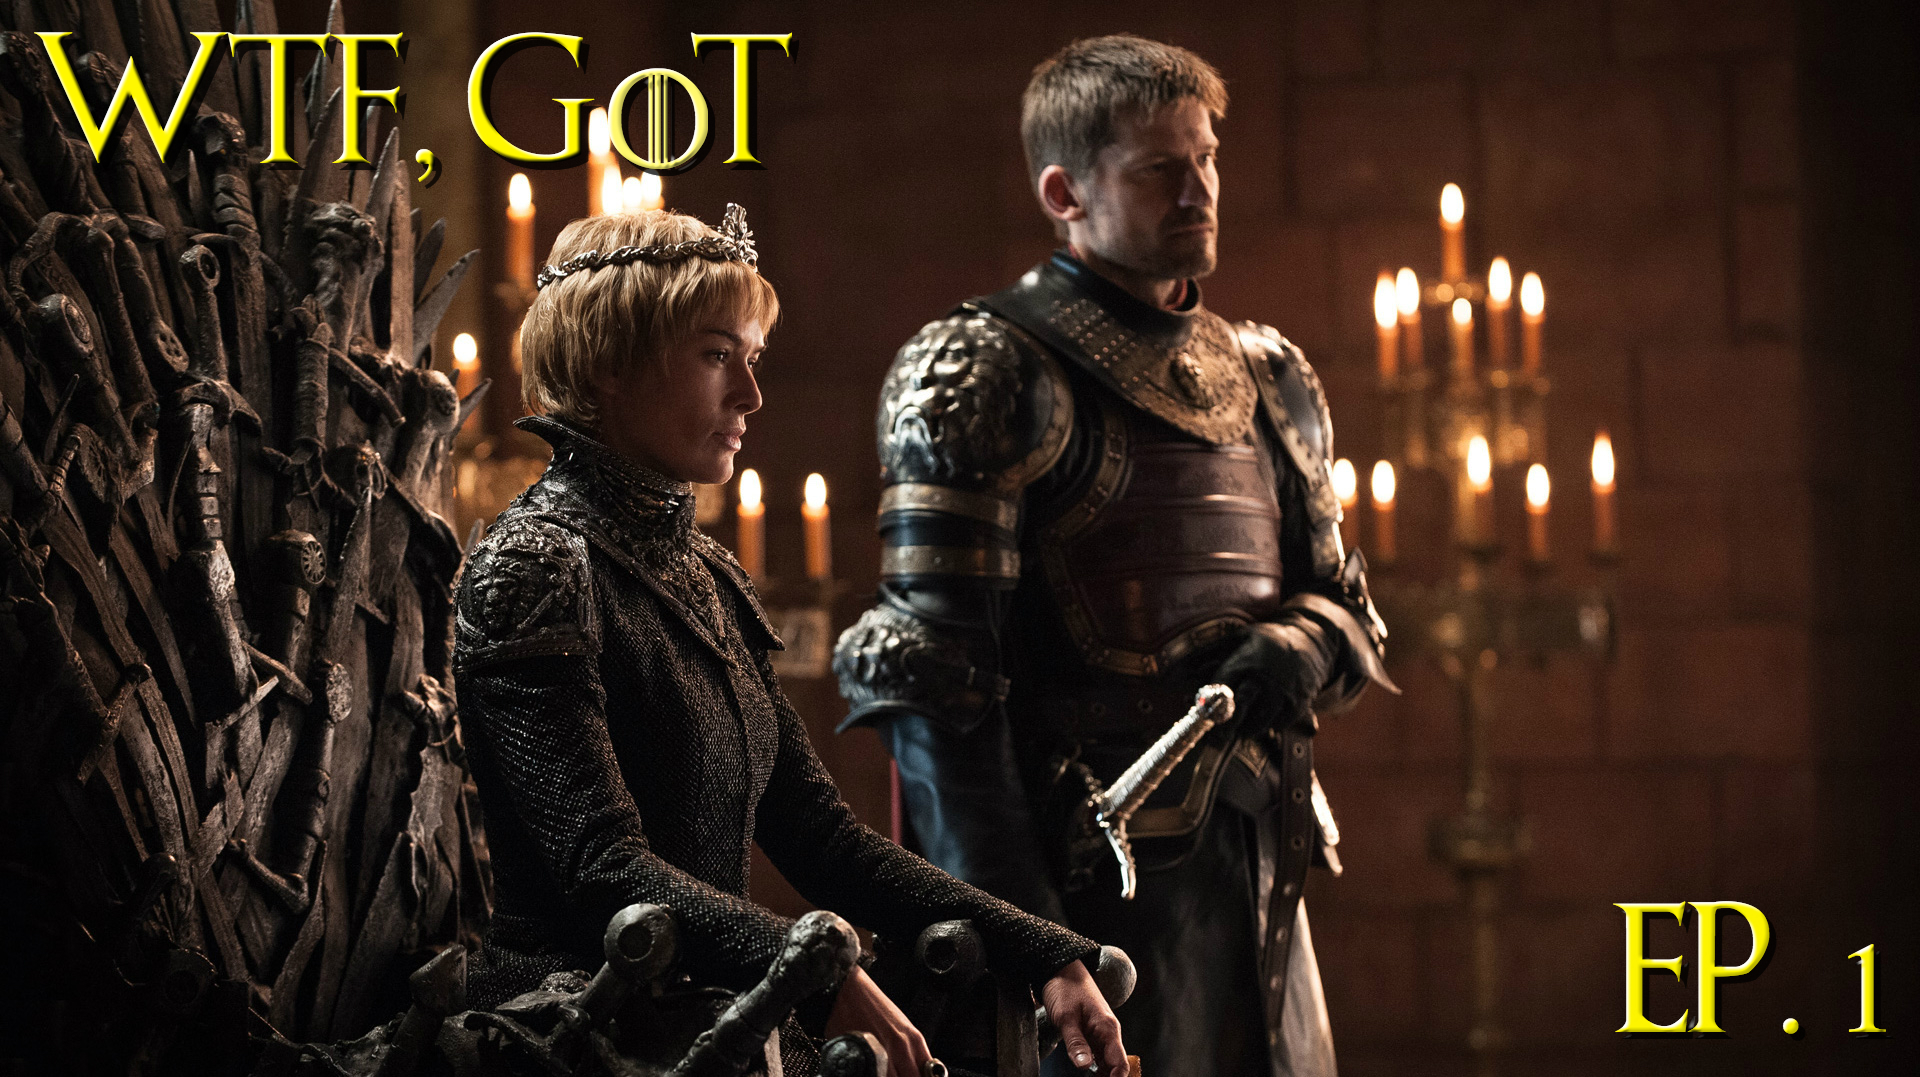 Podcast: WTF, Game of Thrones?! Ep. 1 - Shall We Begin?